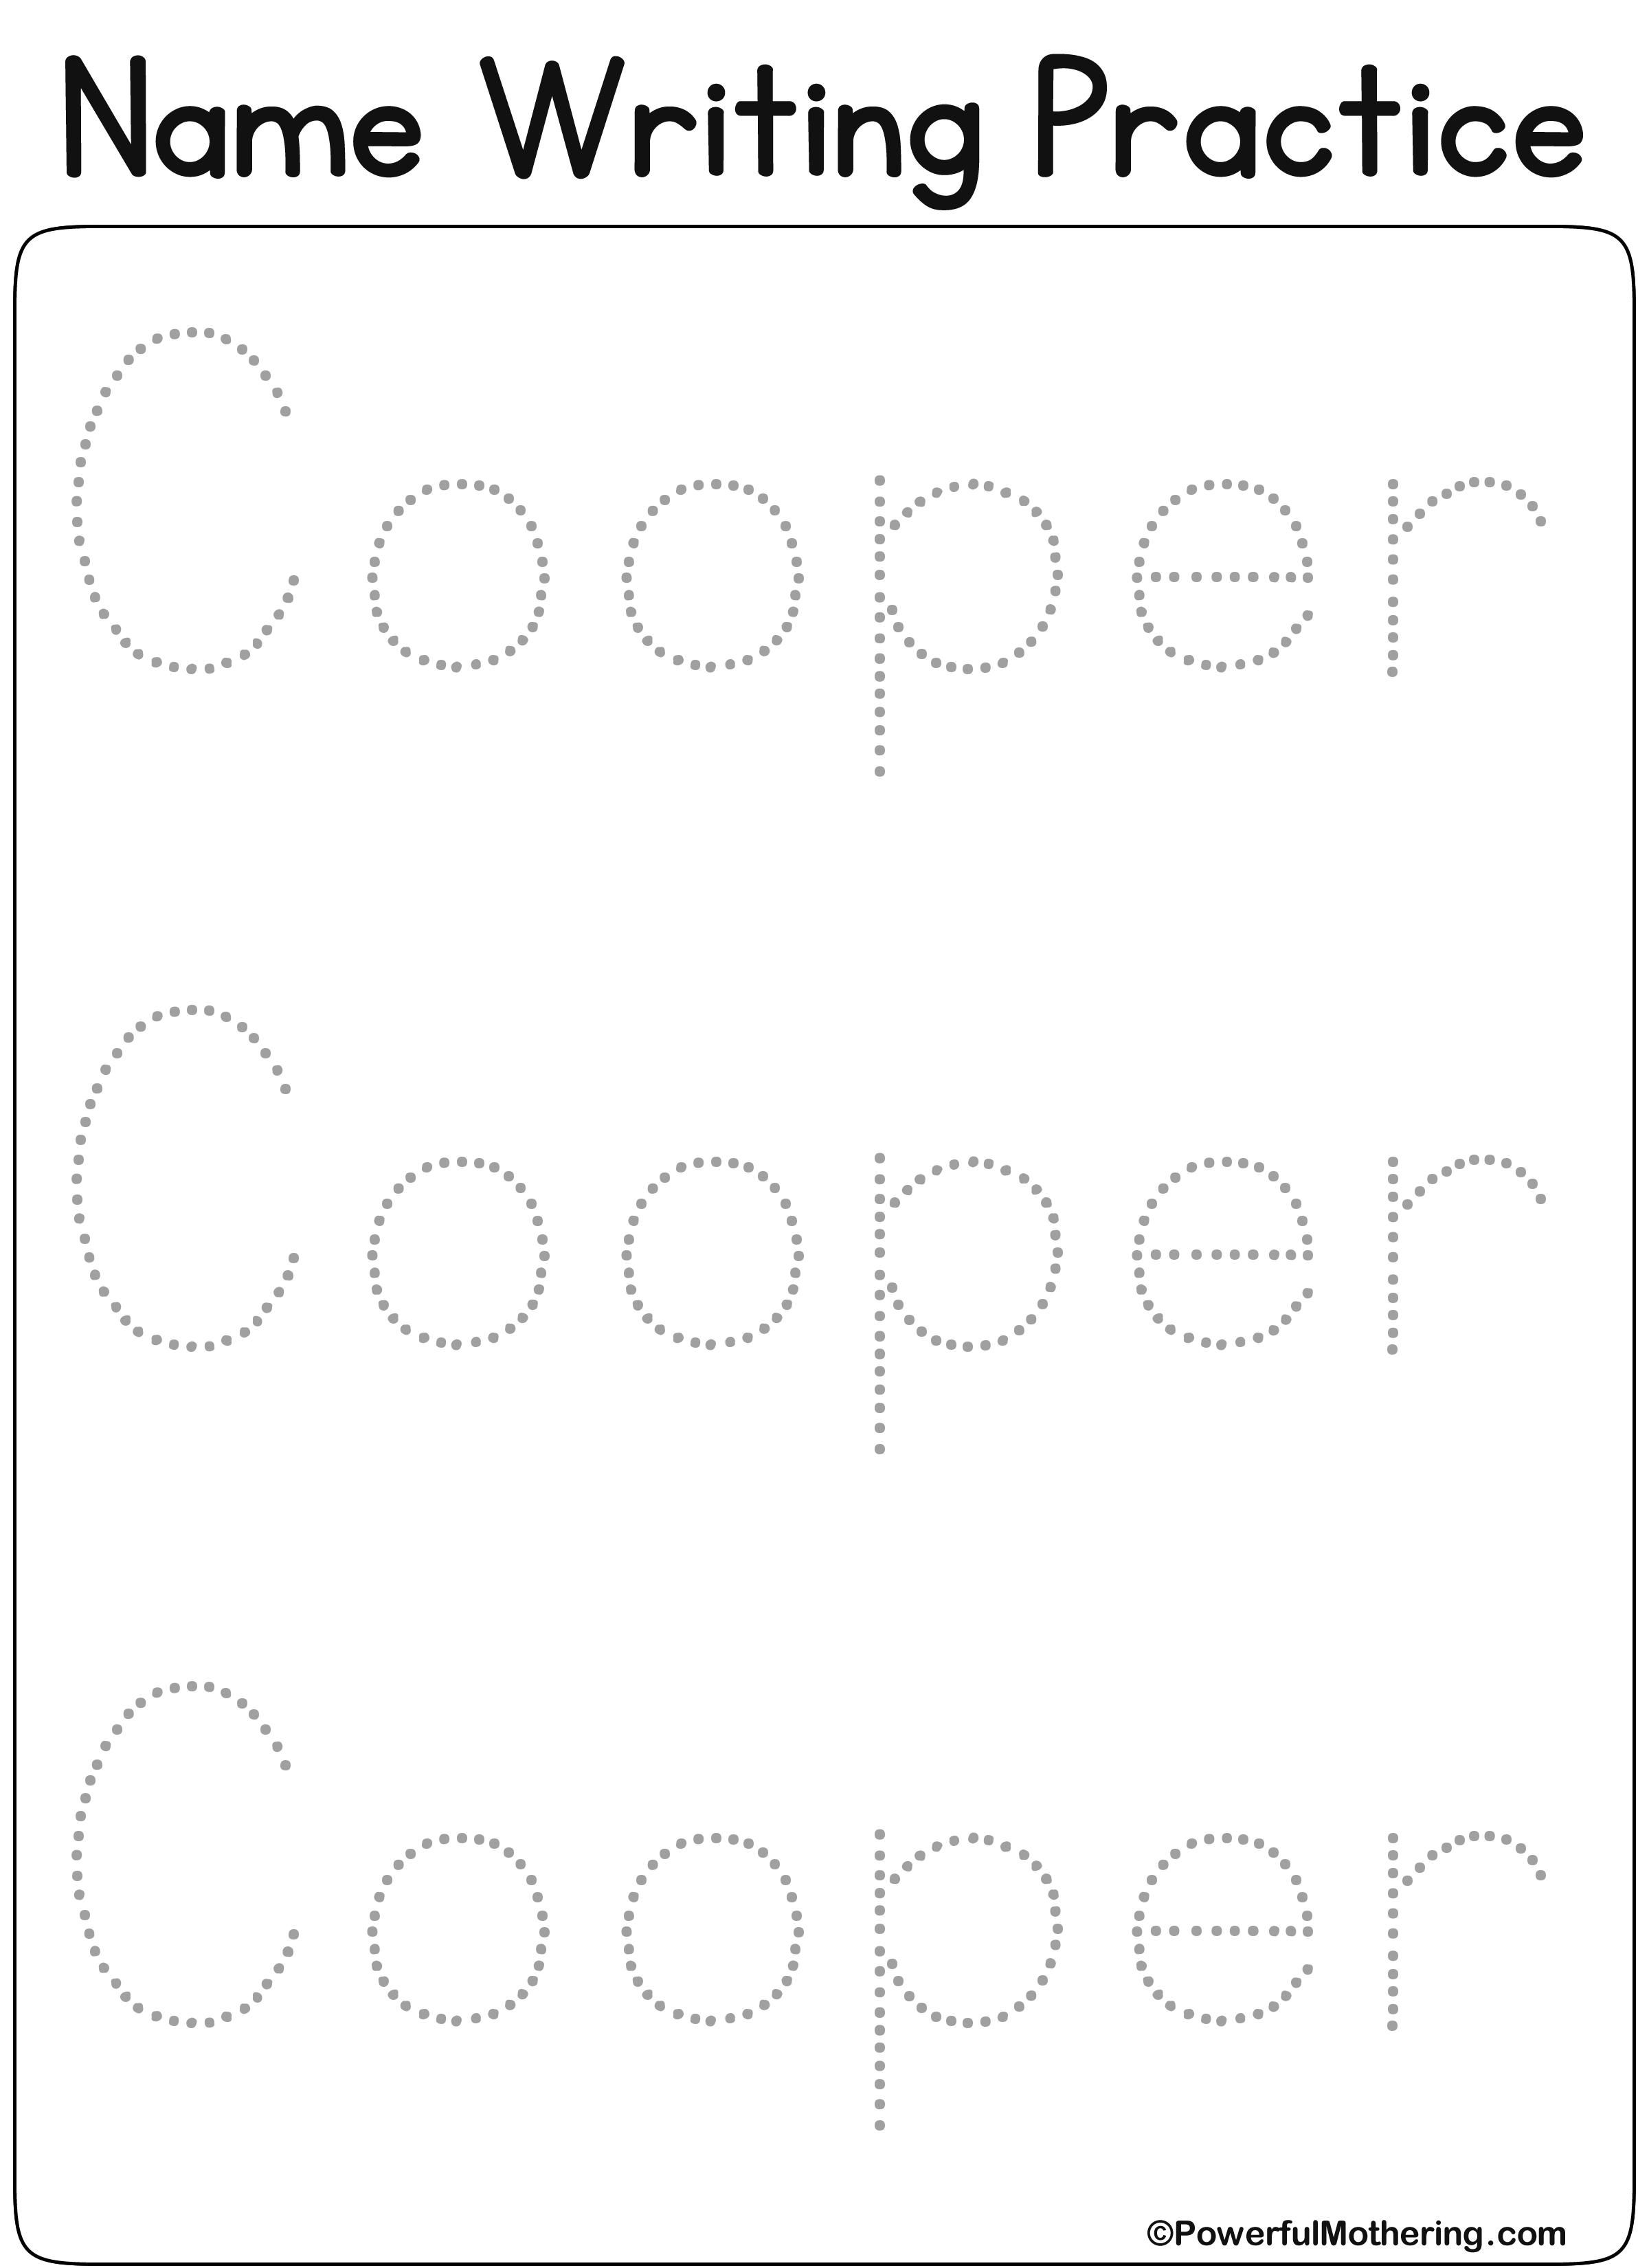 Www Createprintables Com Custom Name Get Php Text X3d Cooper Amp Font X3d 1 Custom Printables Name Writing Practice Name Tracing Printable name tracing worksheets free